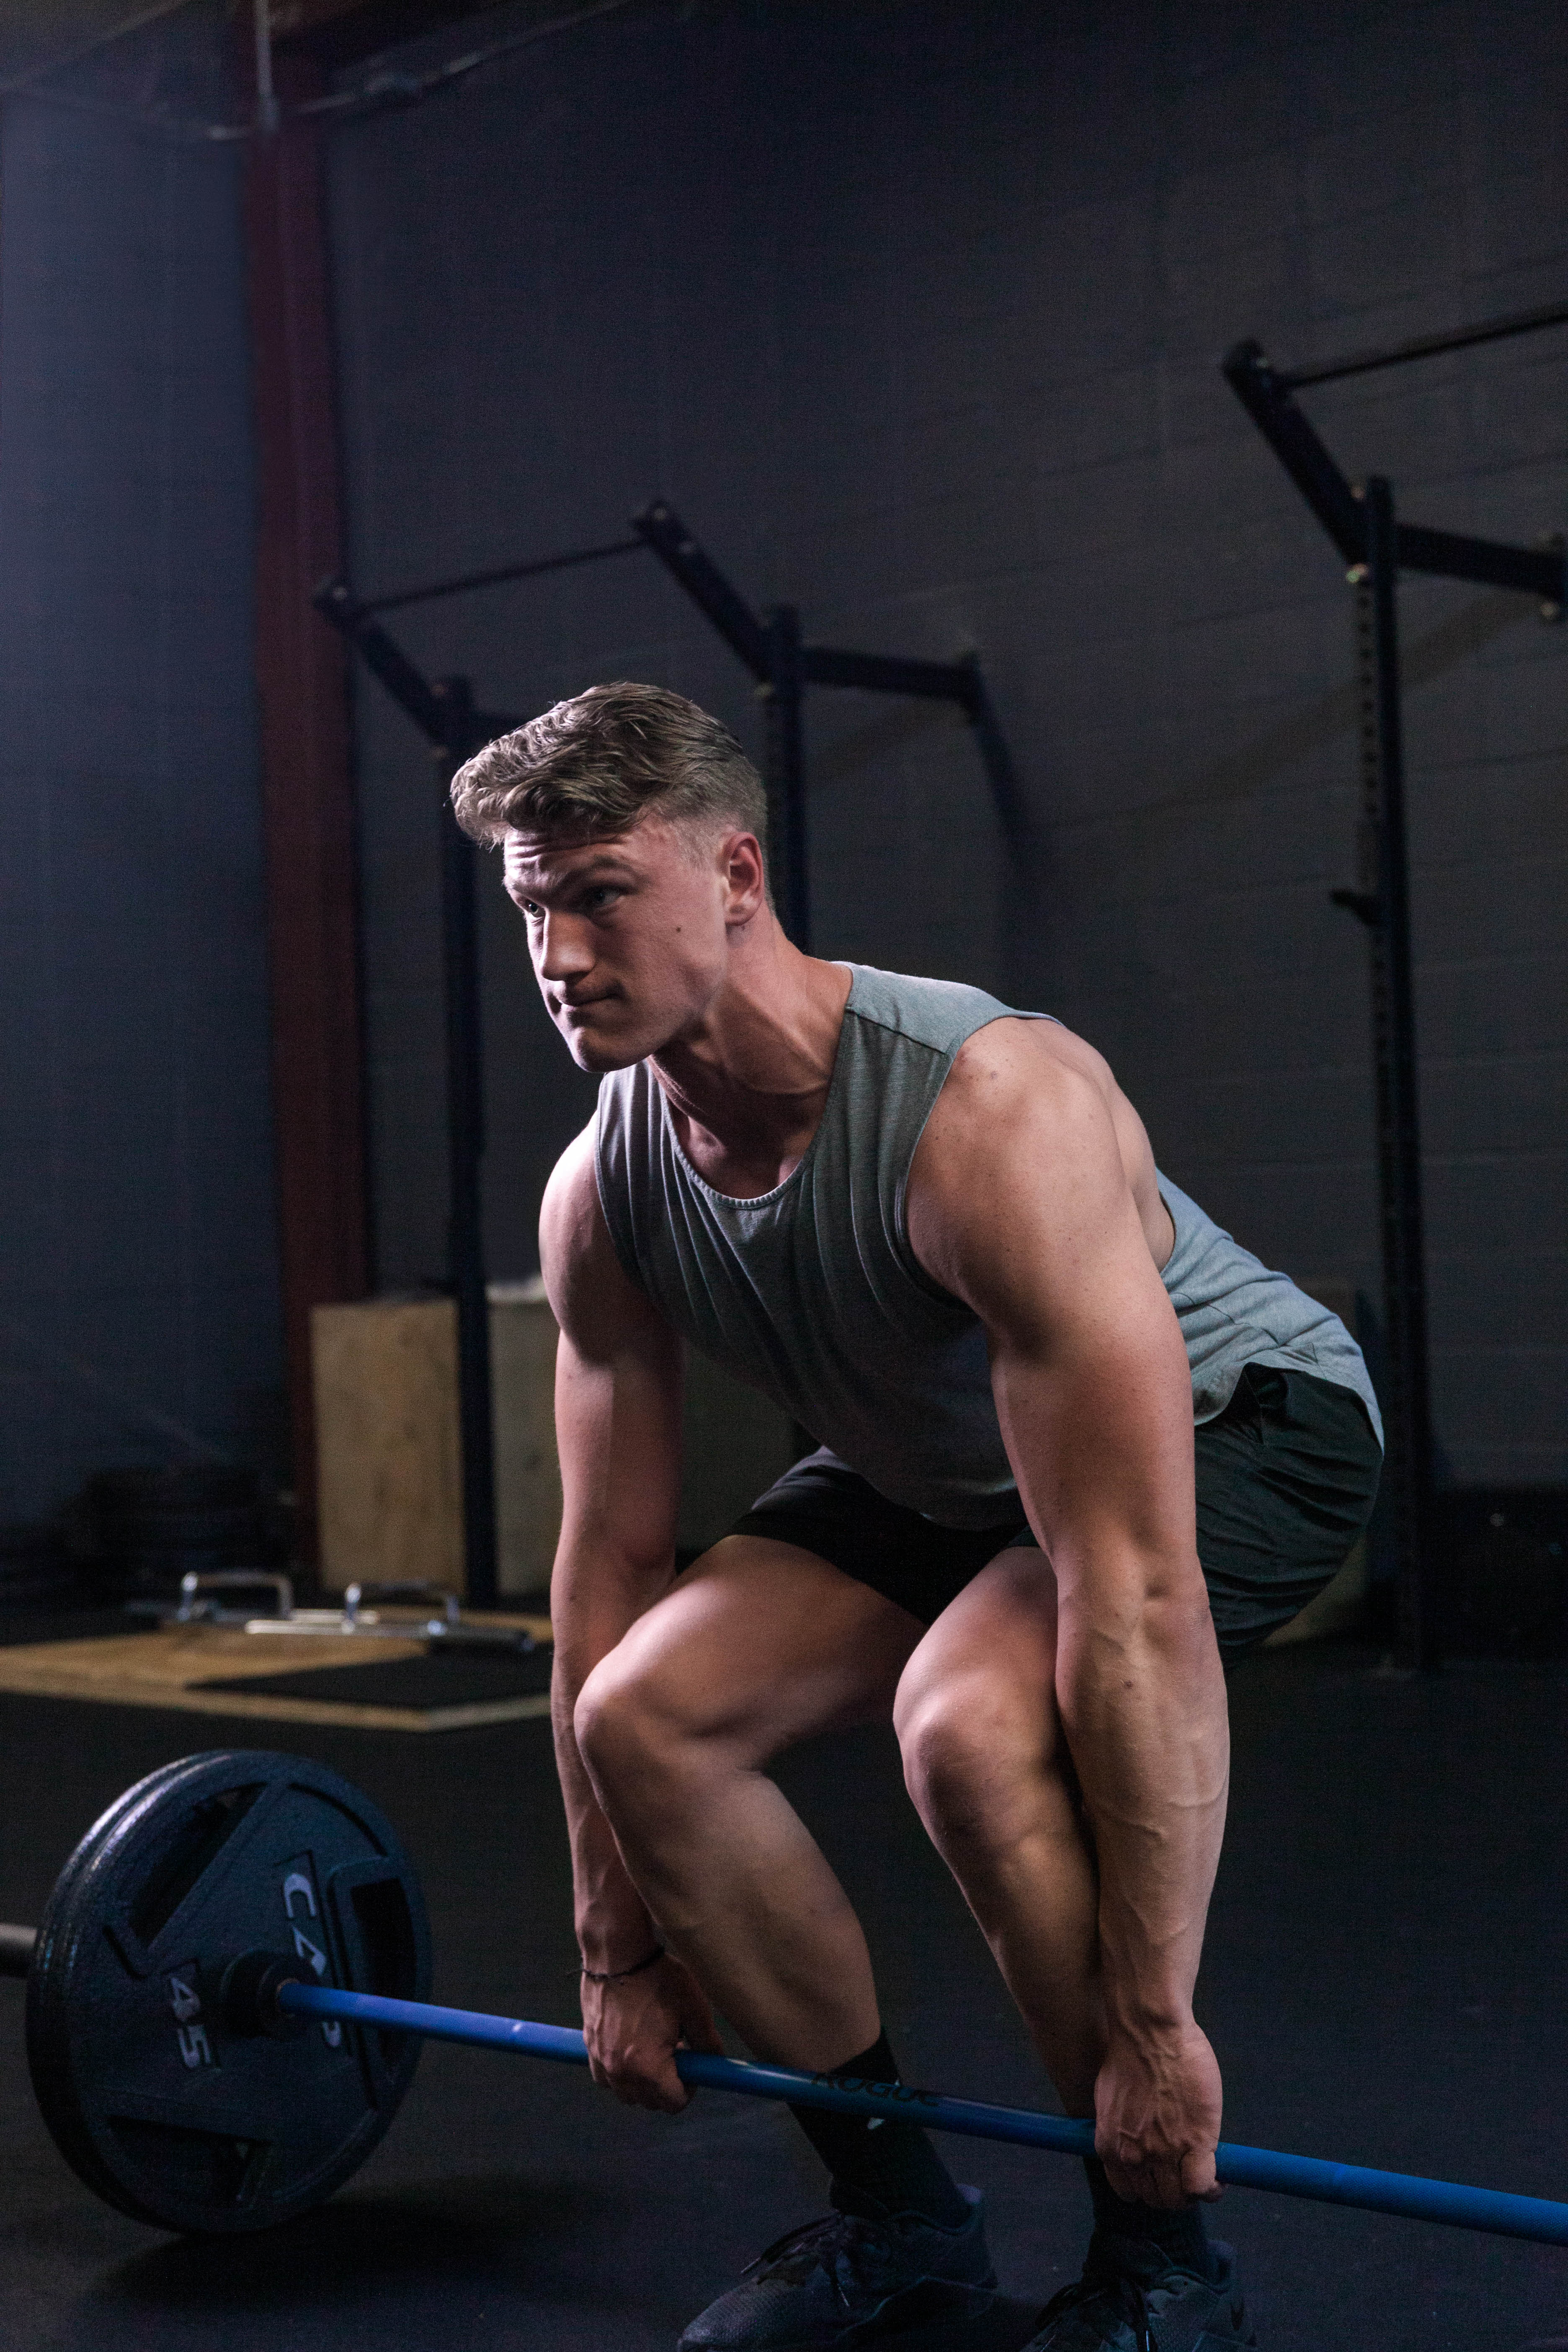 Best gyms in Mobile or near Mobile, Alabama.